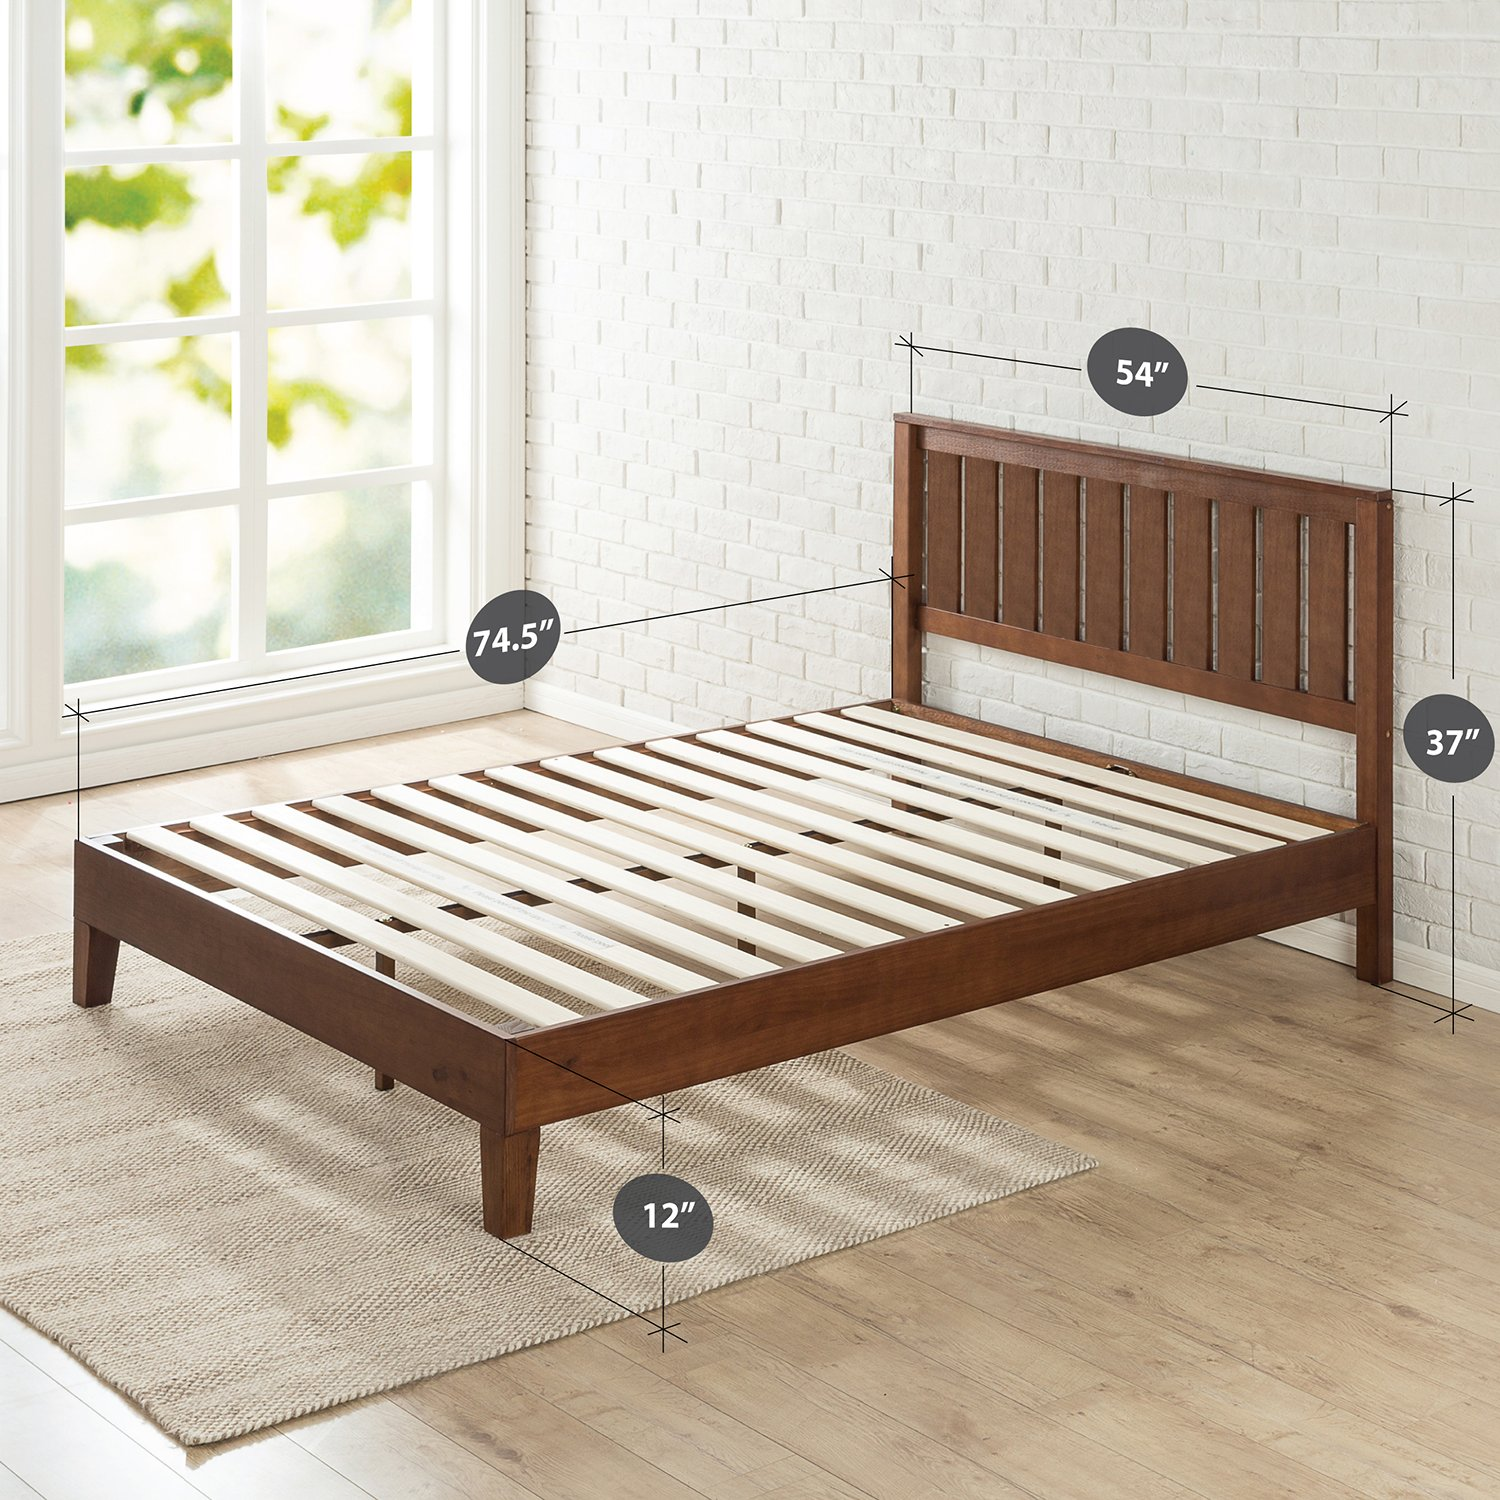 Zinus 12 Inch Deluxe Wood Platform Bed with Headboard / No Box Spring Needed / Wood Slat Support / Antique Espresso Finish, Full by Zinus (Image #2)